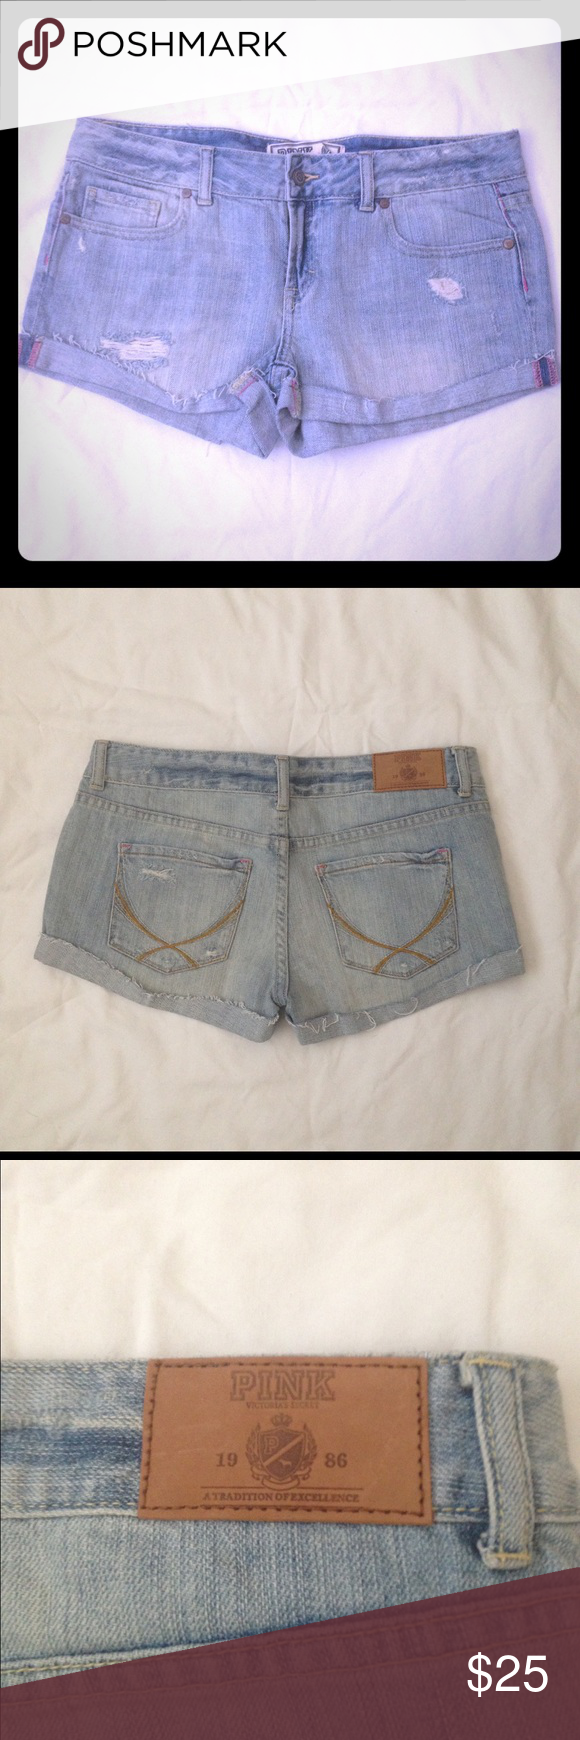 NWOT PINK denim shorts New PINK by Victoria's Secret denim distressed shorts. Open to reasonable offers PINK Victoria's Secret Shorts Jean Shorts